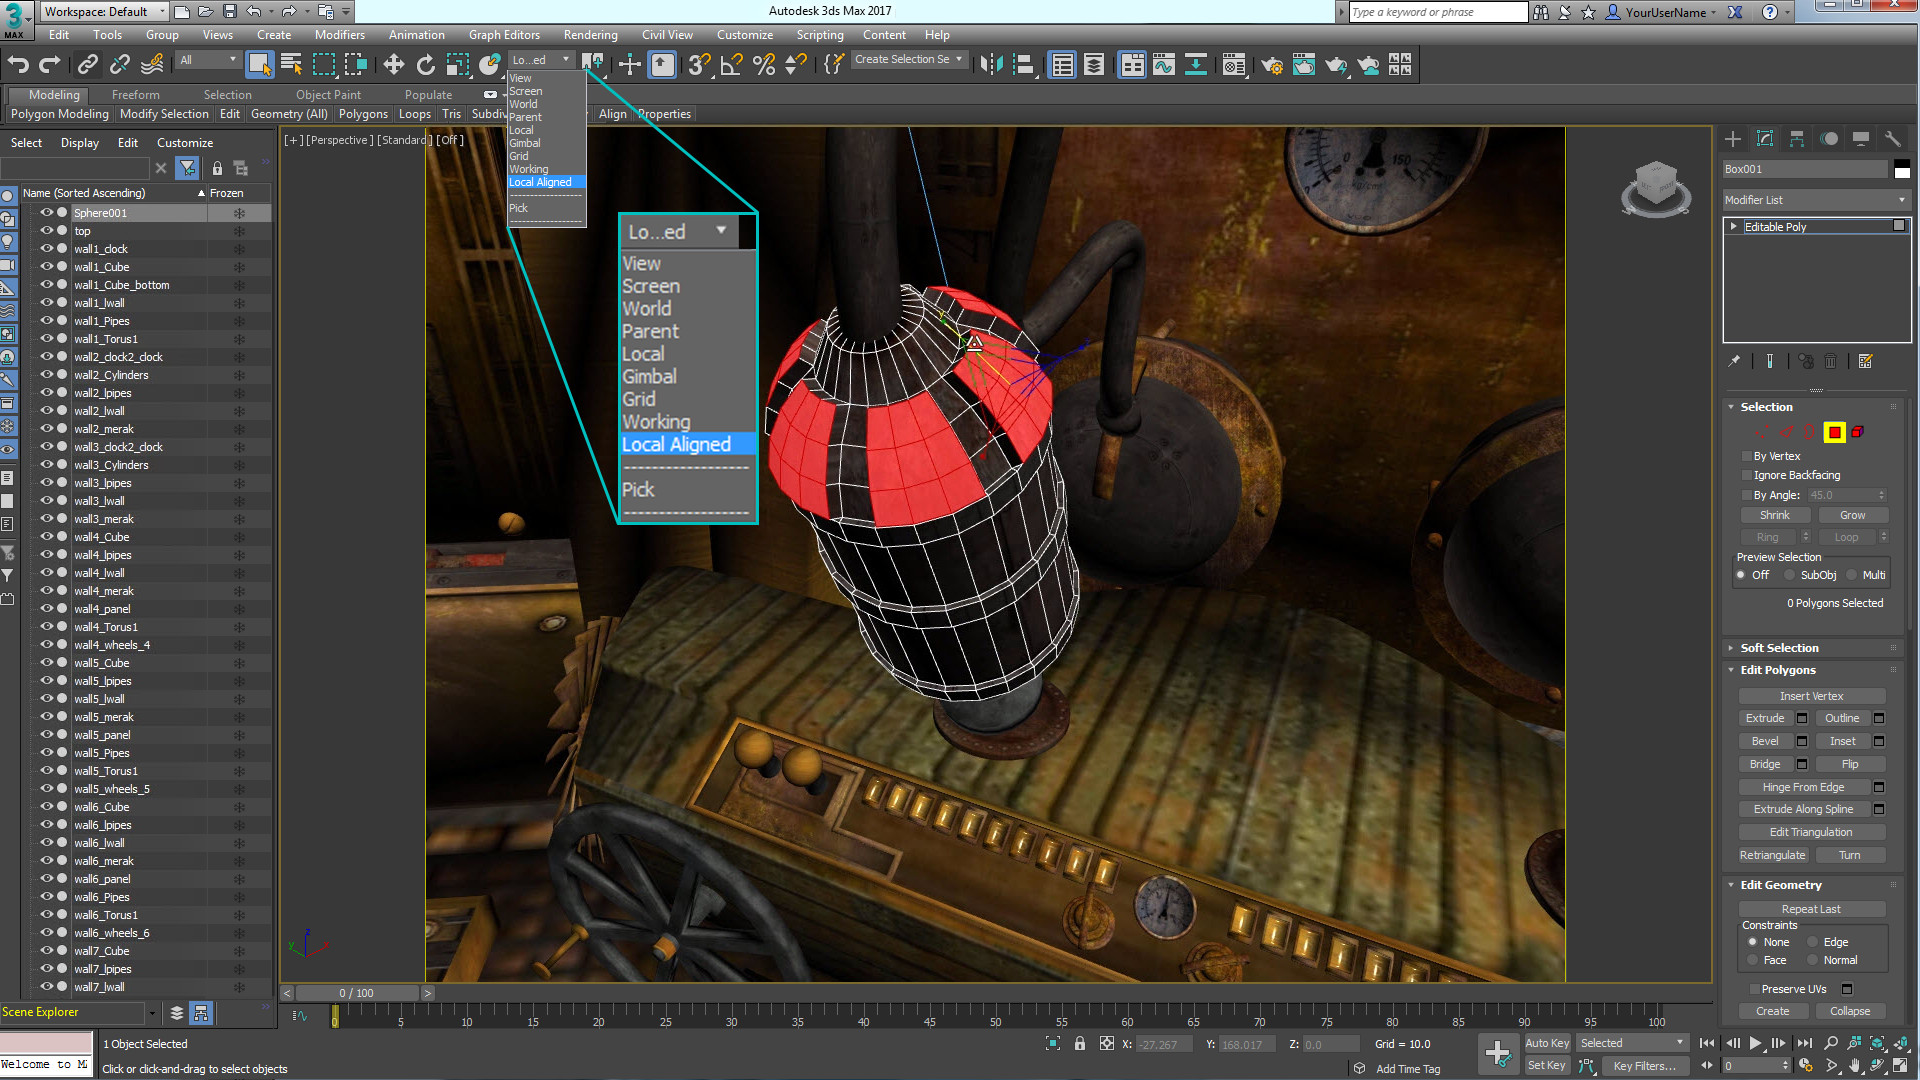 Autodesk ships 3ds Max 2017 | CG Channel